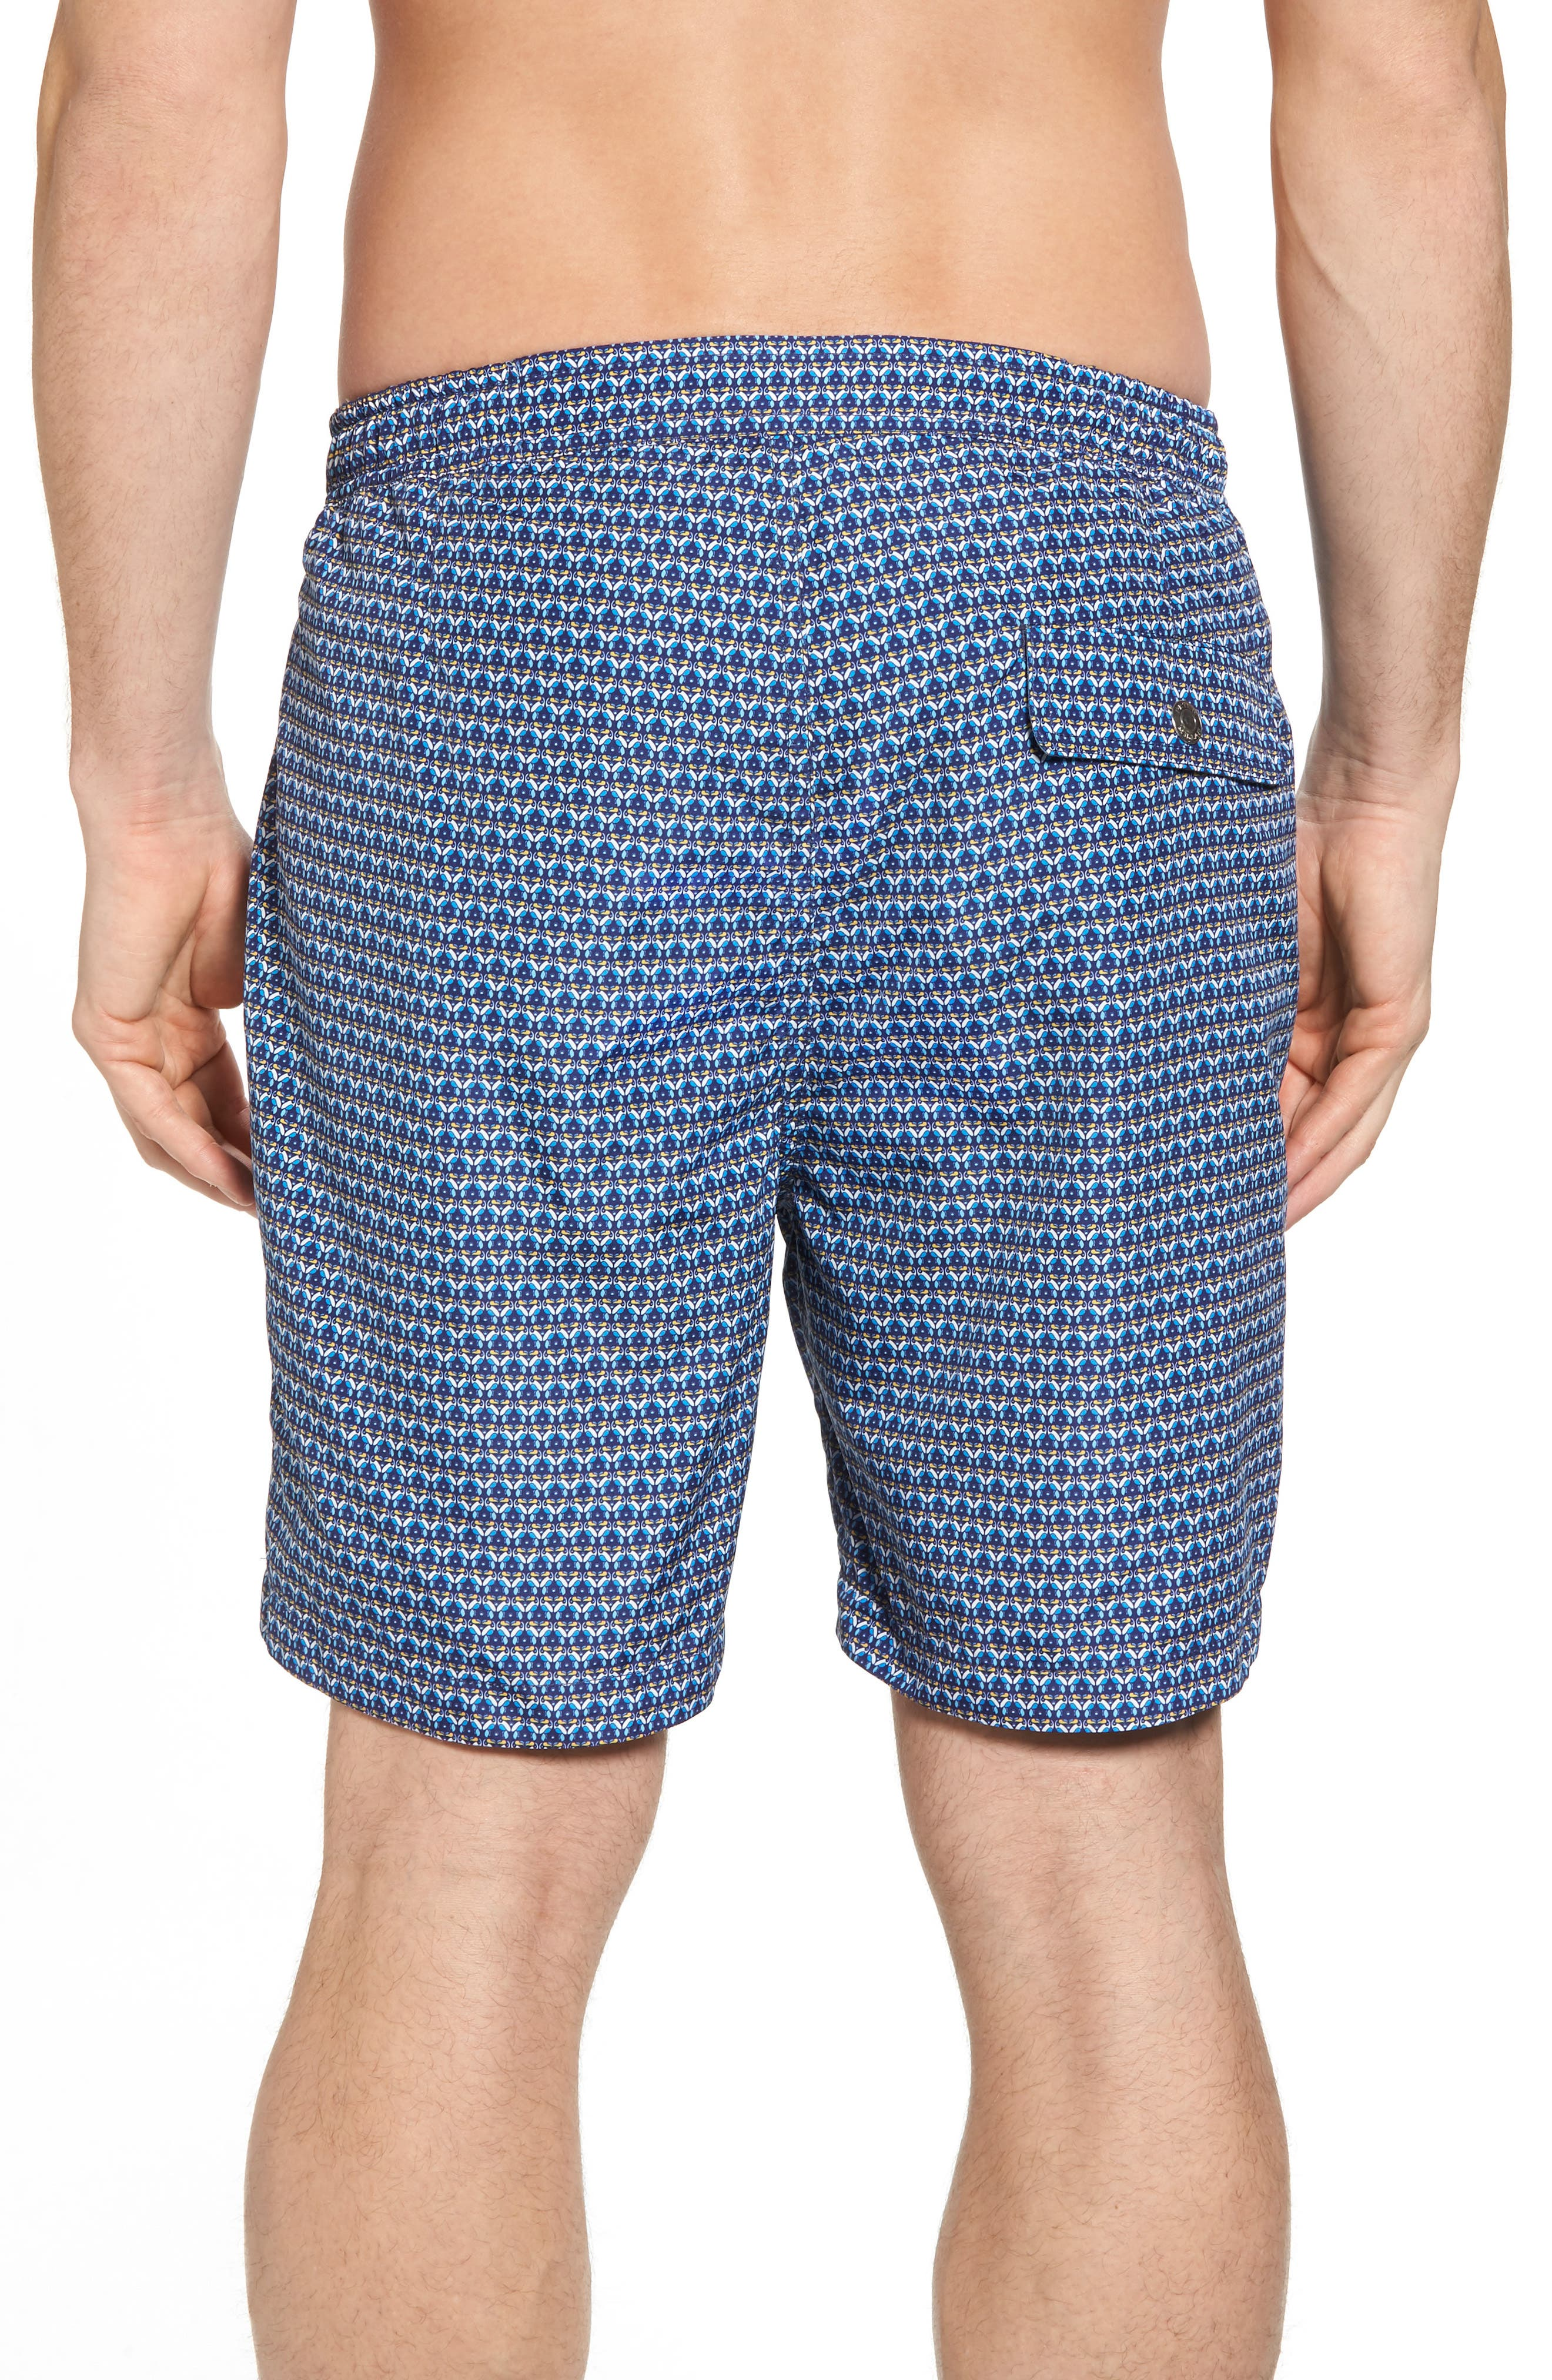 Peter Millar Two Can Too Swim Trunks,                             Alternate thumbnail 2, color,                             440